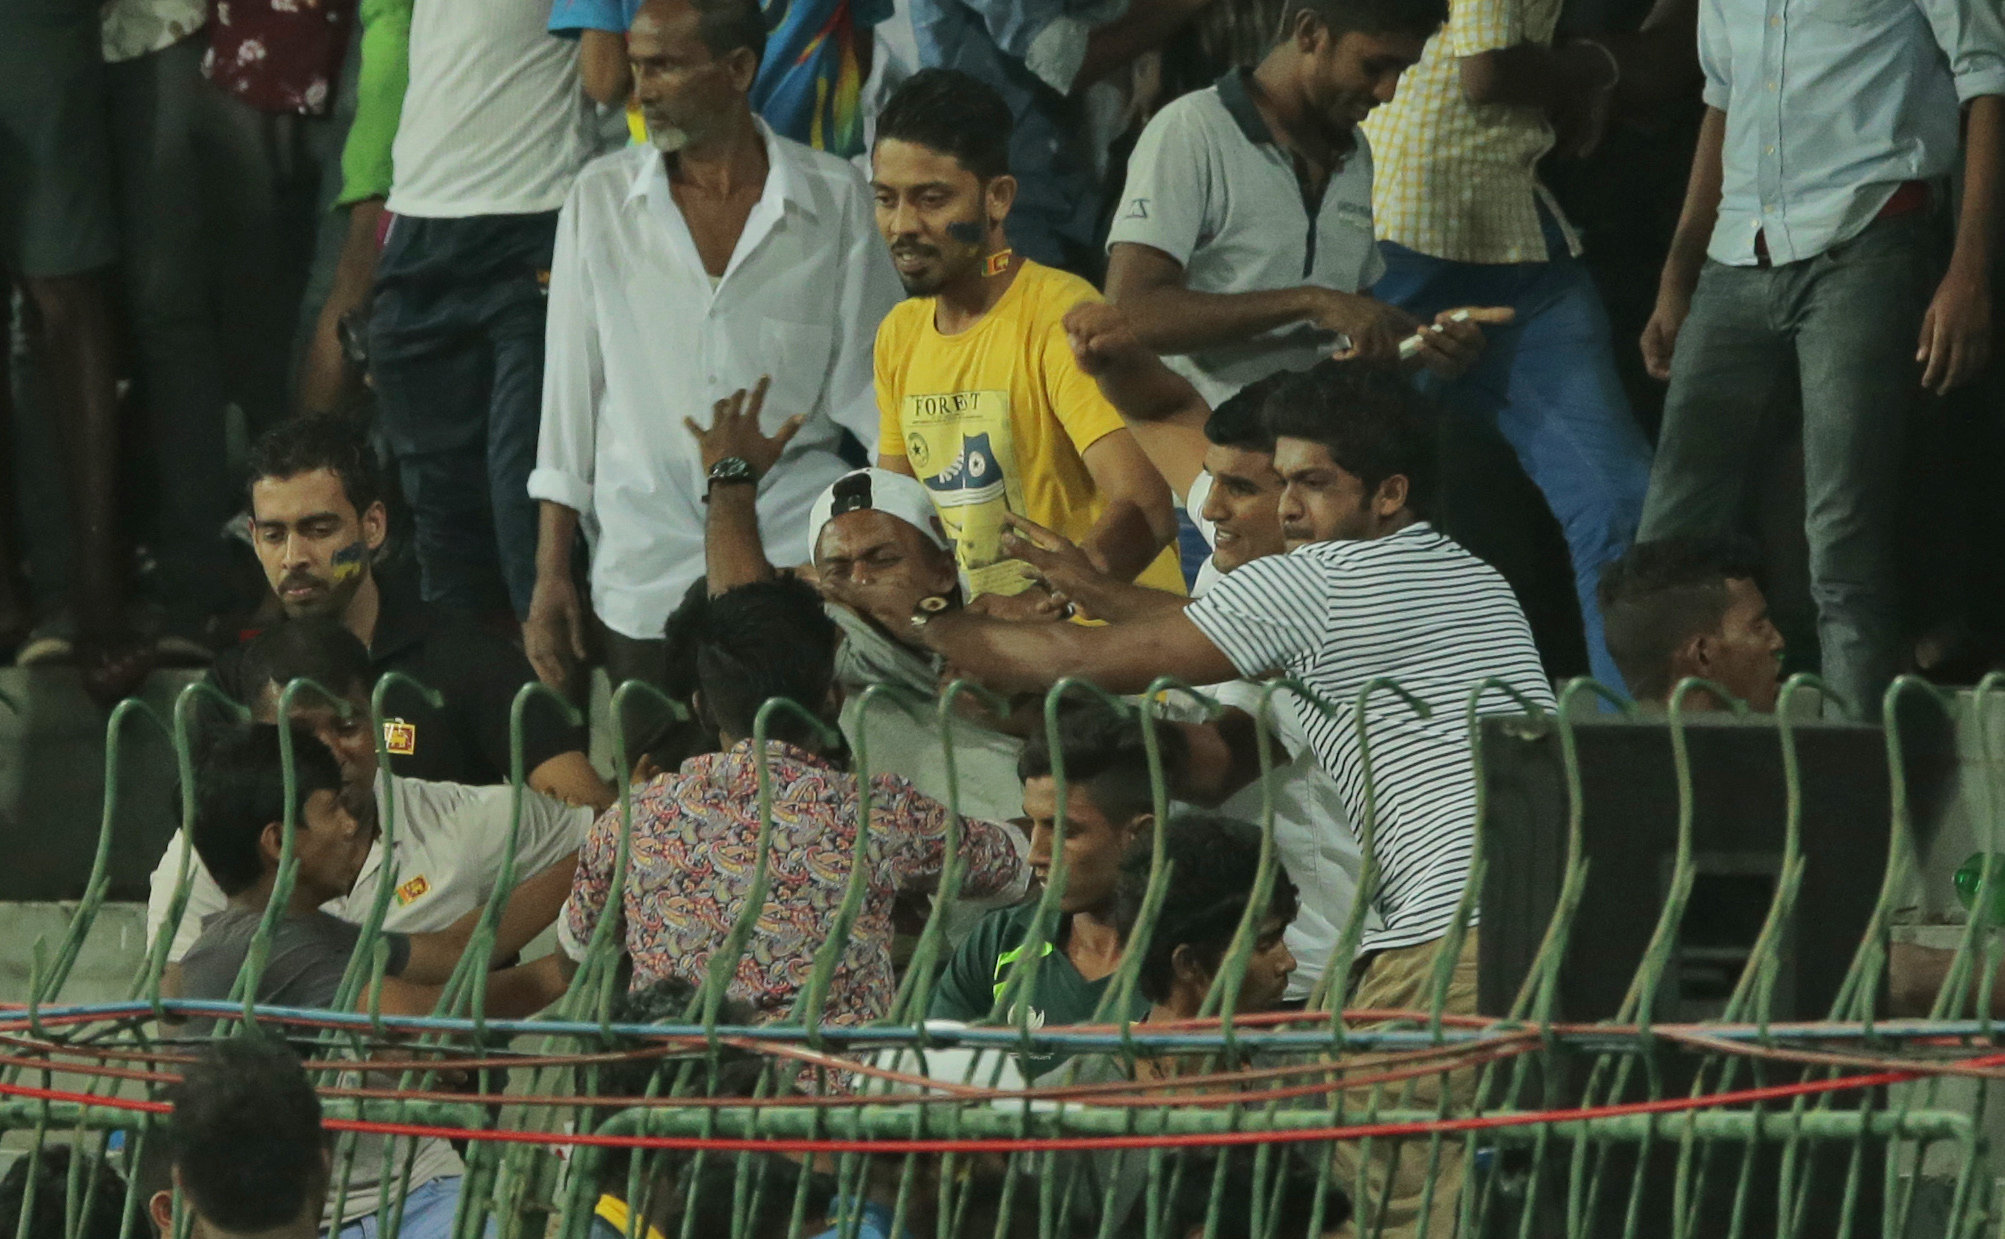 Rioting crowds forced cricketers to retreat to their dressing rooms as projectiles reached the outer field of the Premadasa Stadium during the third one-day international between Pakistan and hosts Sri Lanka on Sunday. (Photo: AP)